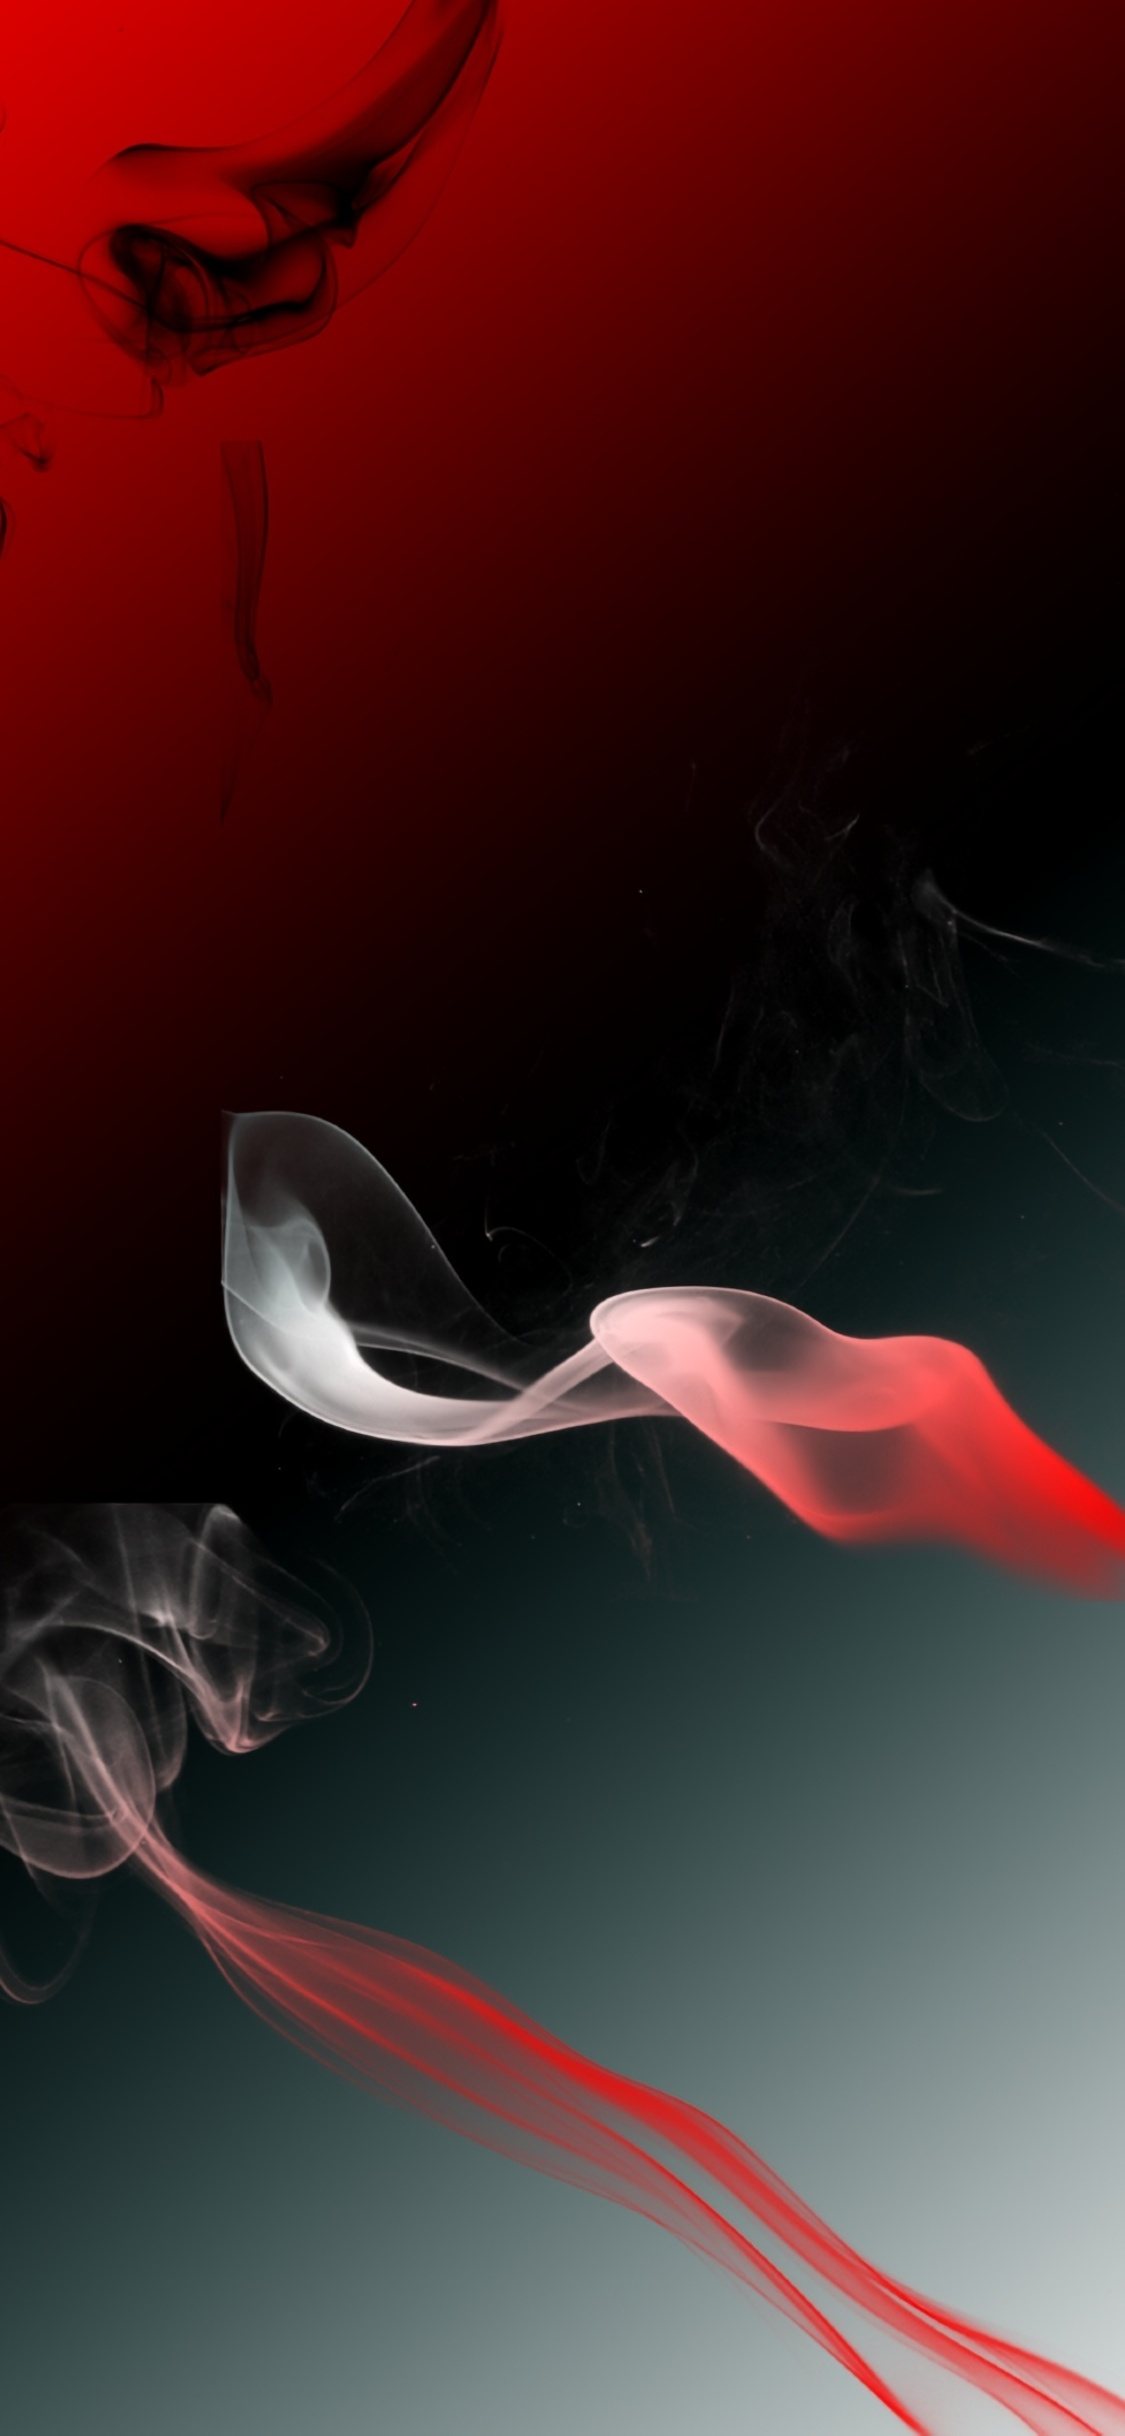 1125x2436 Red Smoke Digital Art 4k Iphone Xs Iphone 10